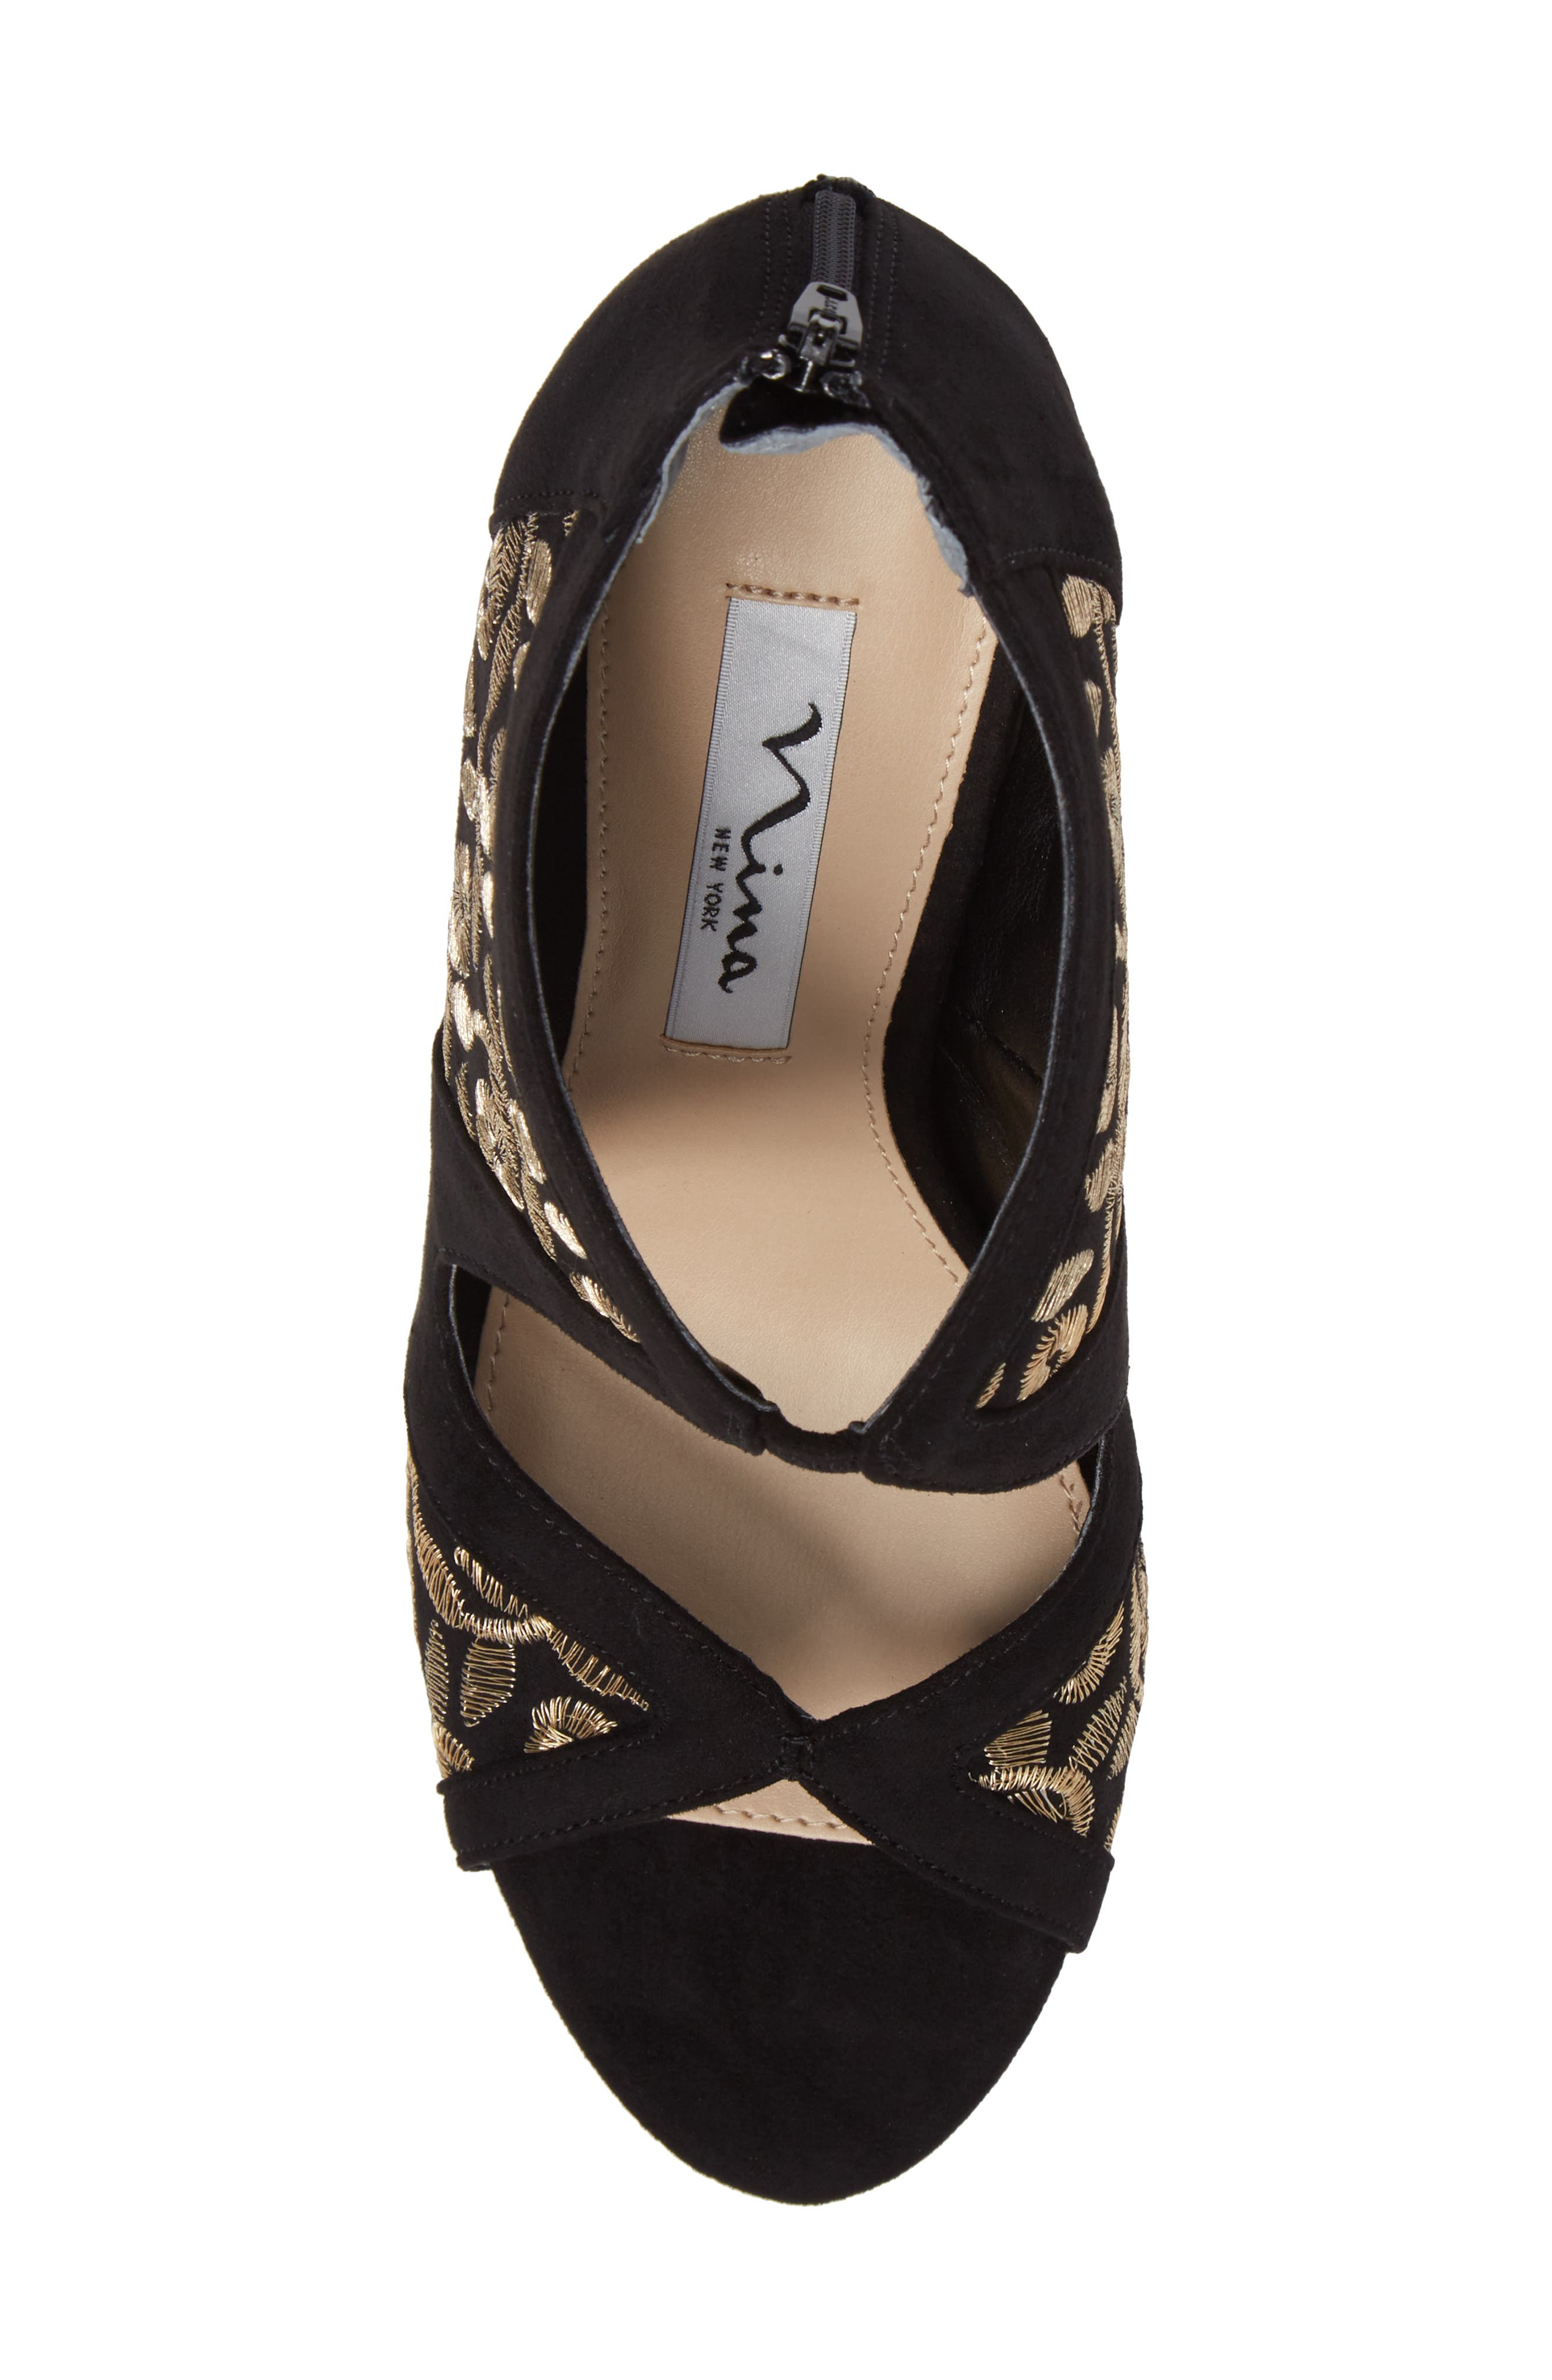 Cordella Open Toe Pump,                             Alternate thumbnail 5, color,                             Black/ Gold Embroidery Fabric